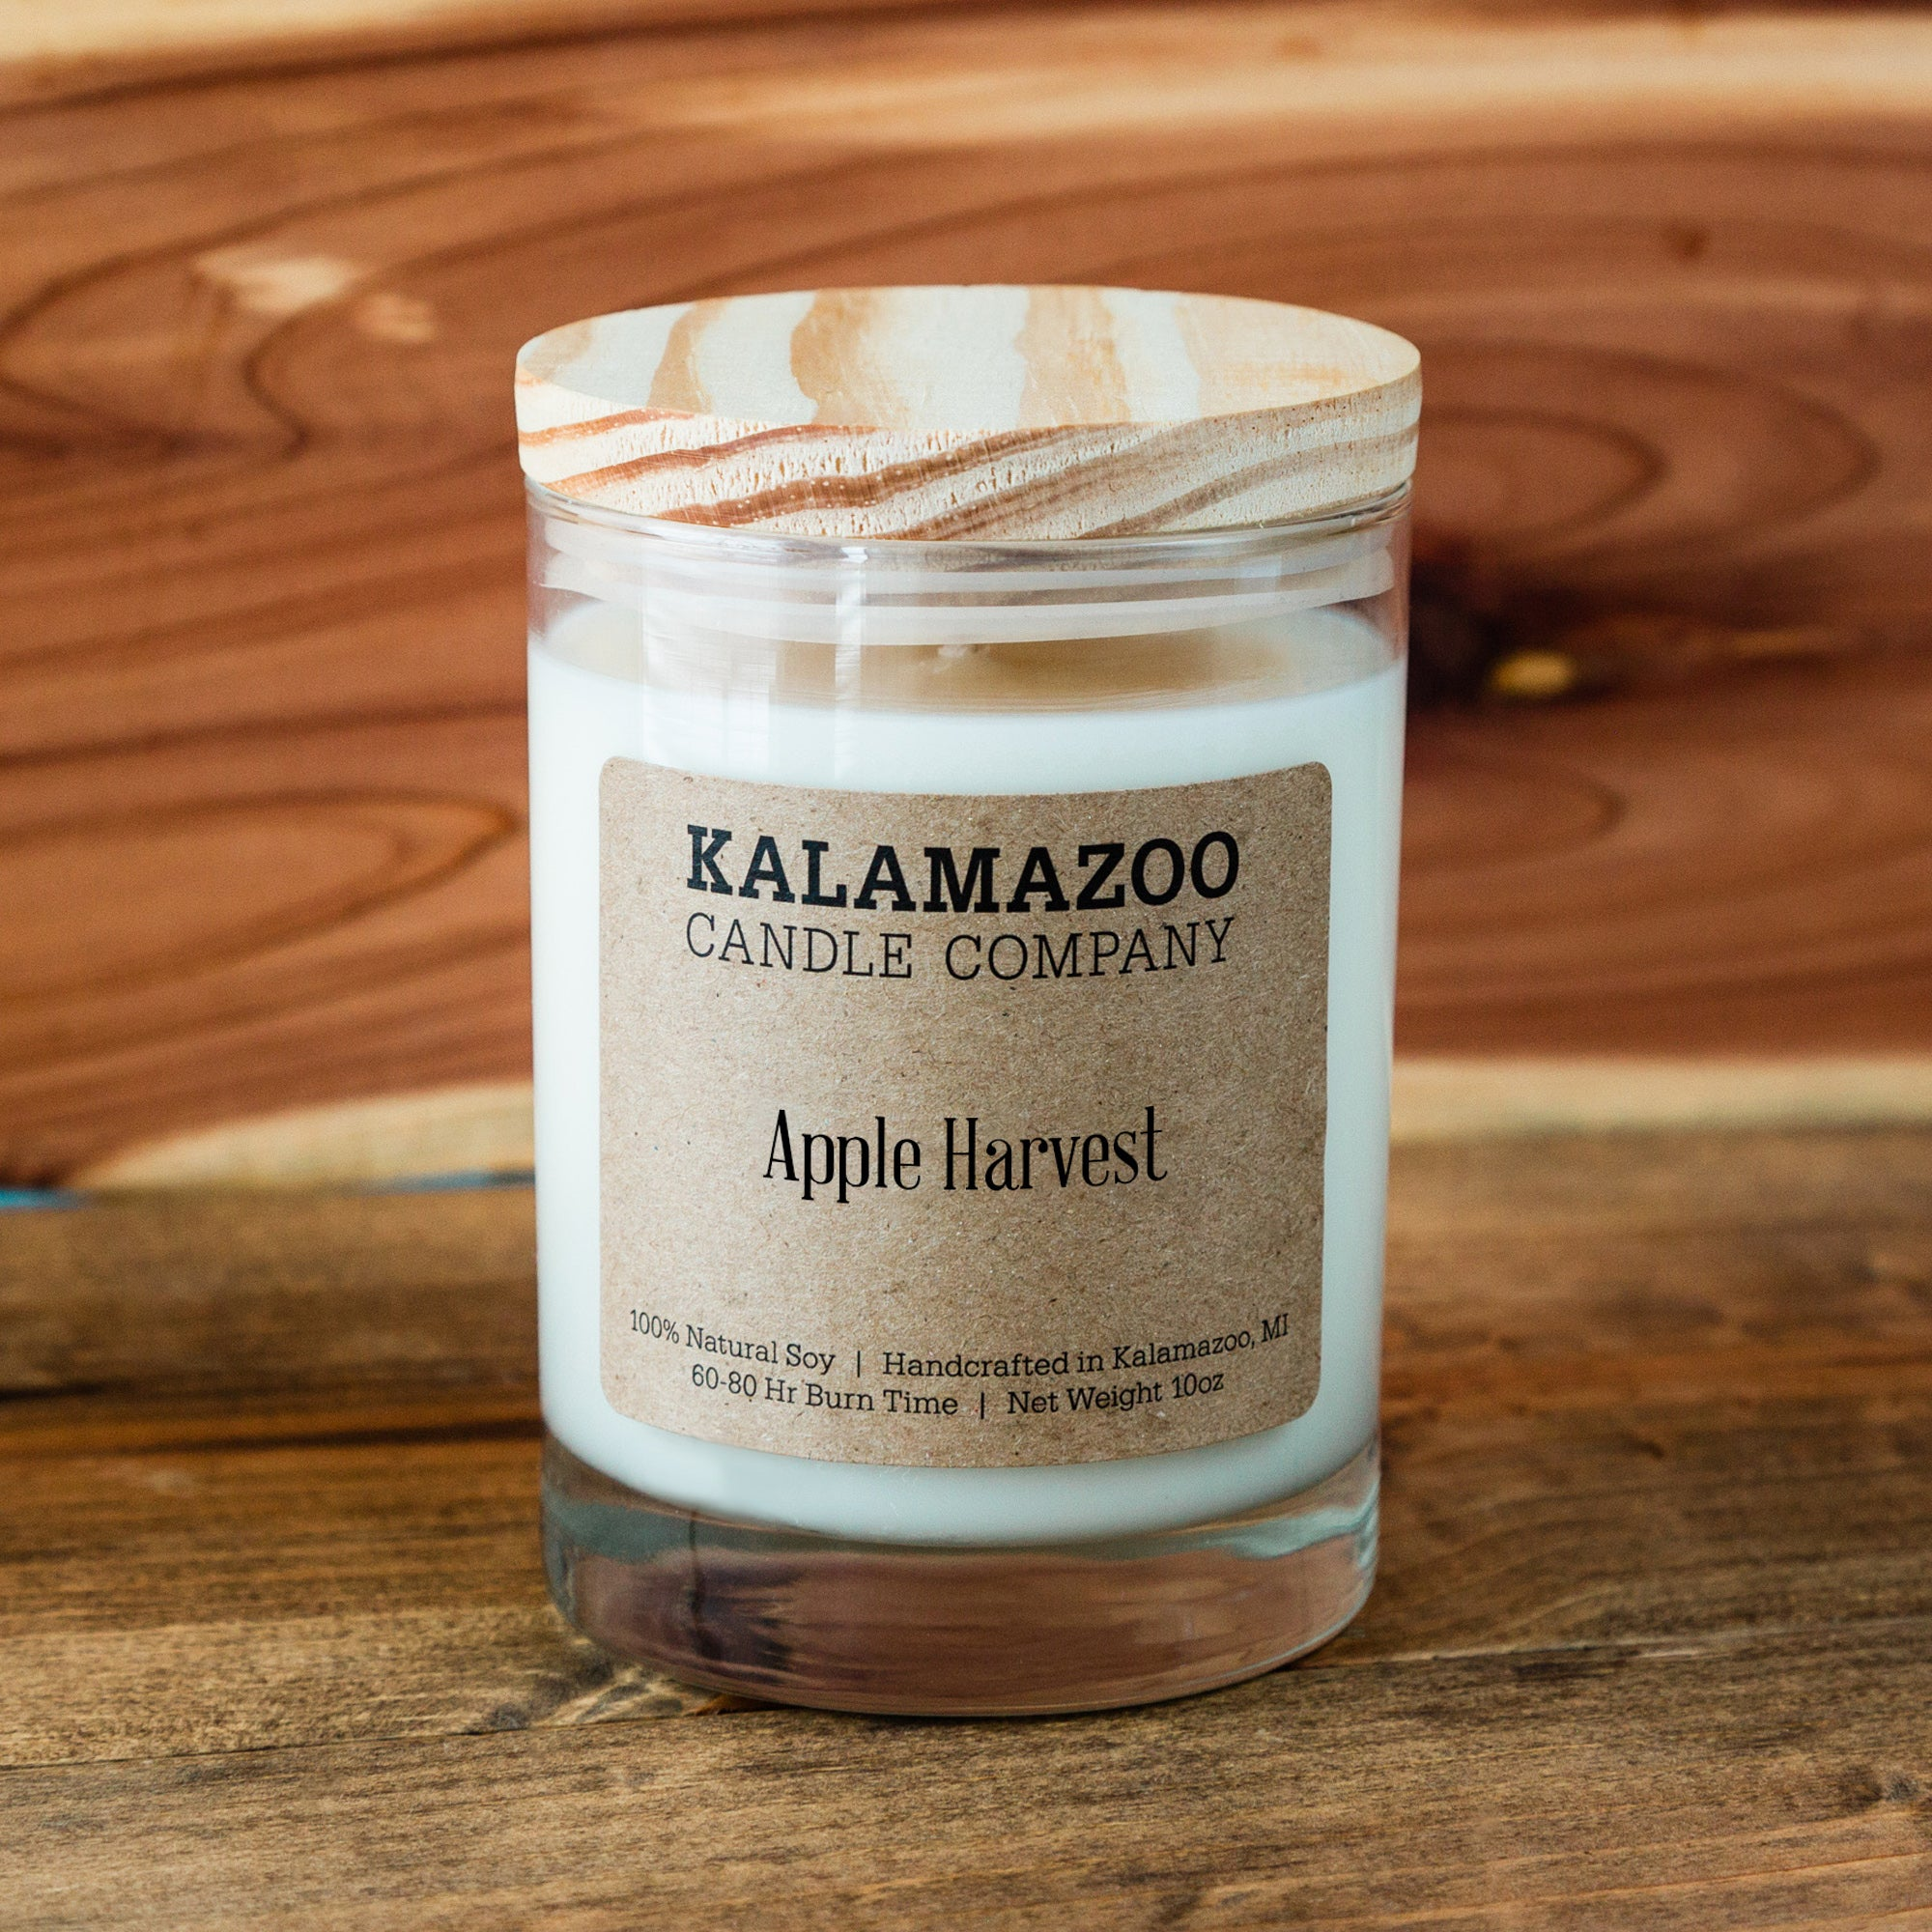 Apple Harvest Candle: 10oz Jar